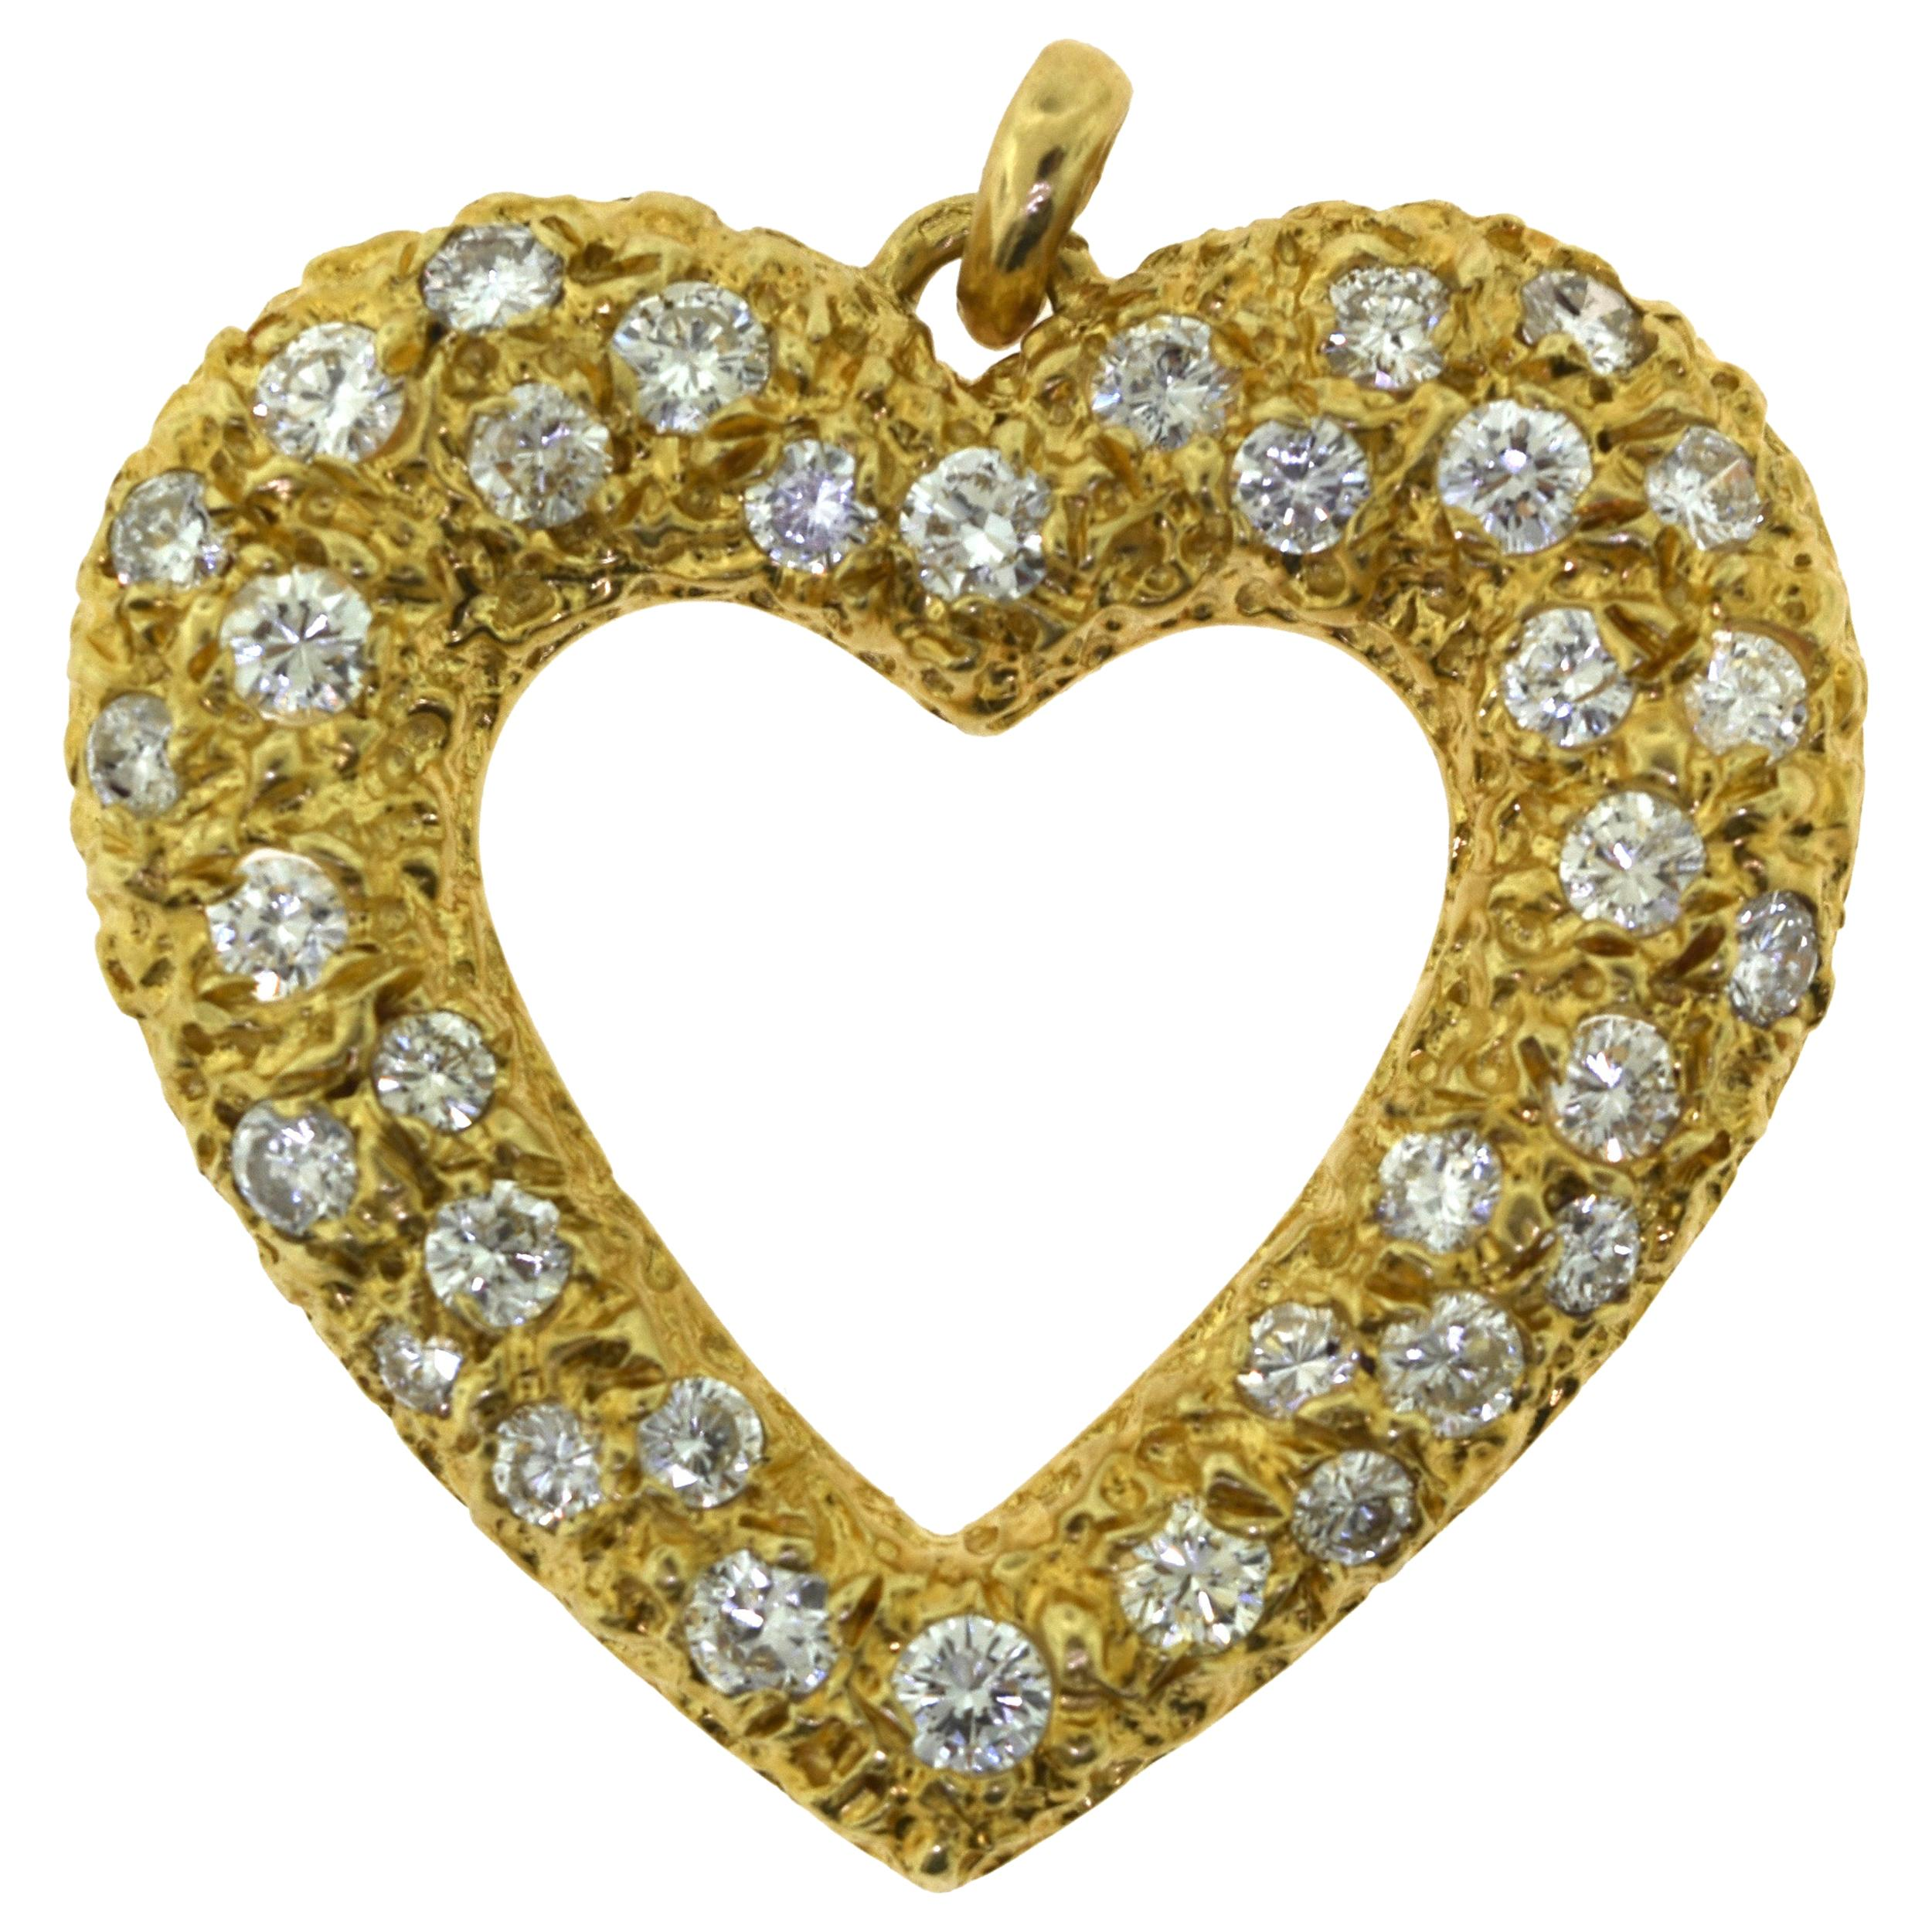 Cartier French Paris Lg. Heart Diamond Paved Pendant Necklace in Yellow Gold